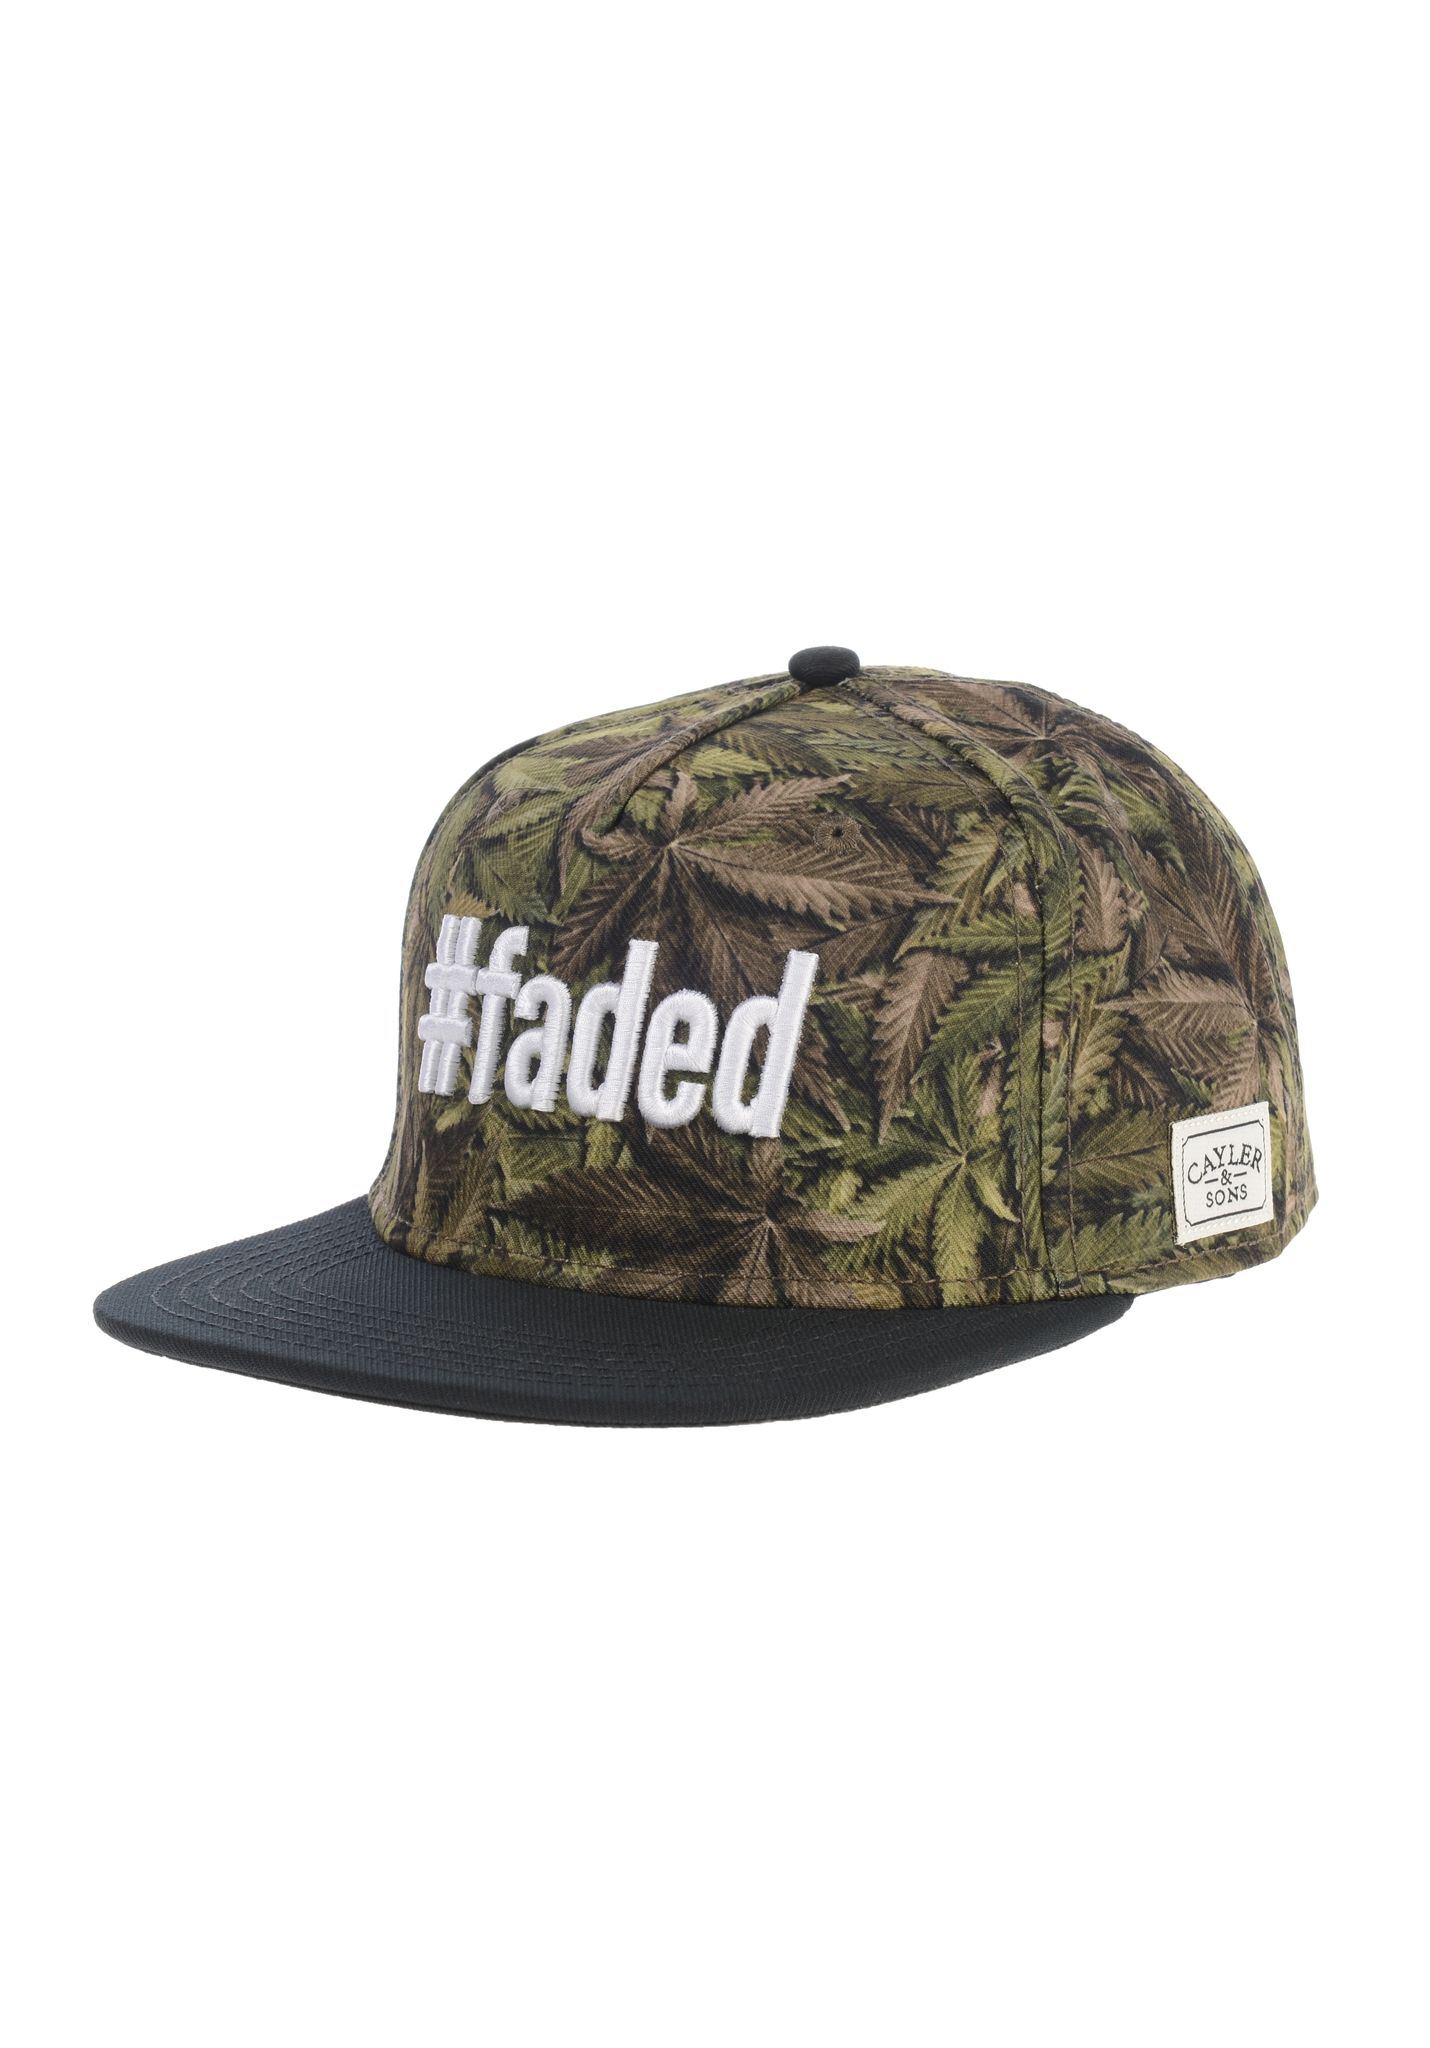 Cayler   Sons  Faded - Snapback Cap - Green - Planet Sports 48d0c3a51c6